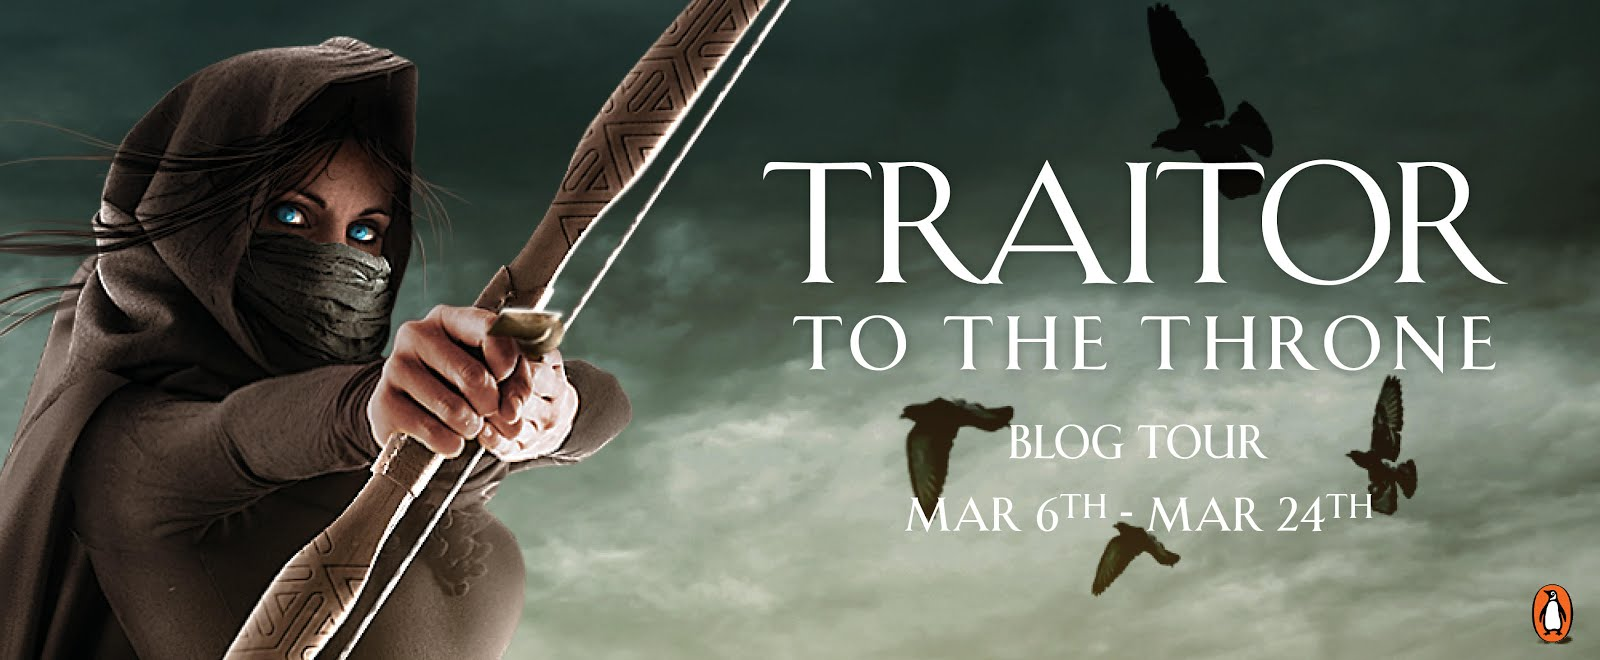 Blog Tour: Traitor to the Throne